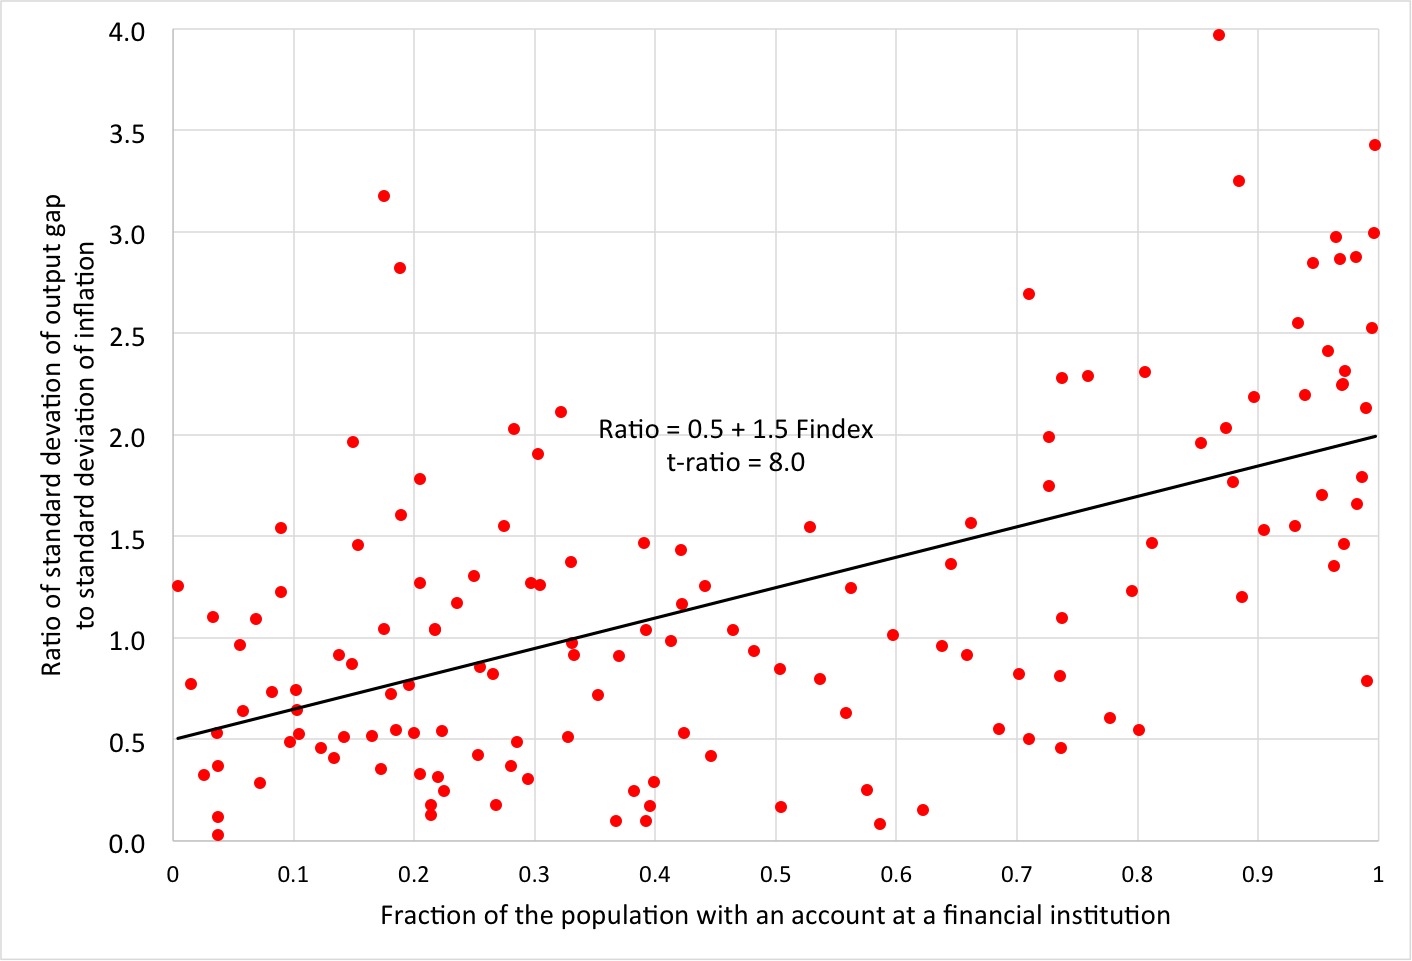 """Source: Graph 7 in    Aaron Mehrotra and James Yetman, """"Financial inclusion and optimal monetary policy,"""" BIS Working Paper No. 476, December 2014.    Data are for 139 countries. The Findex data are from 2011, and the ratio of the standard deviations is computed using information from 2000 to 2012."""